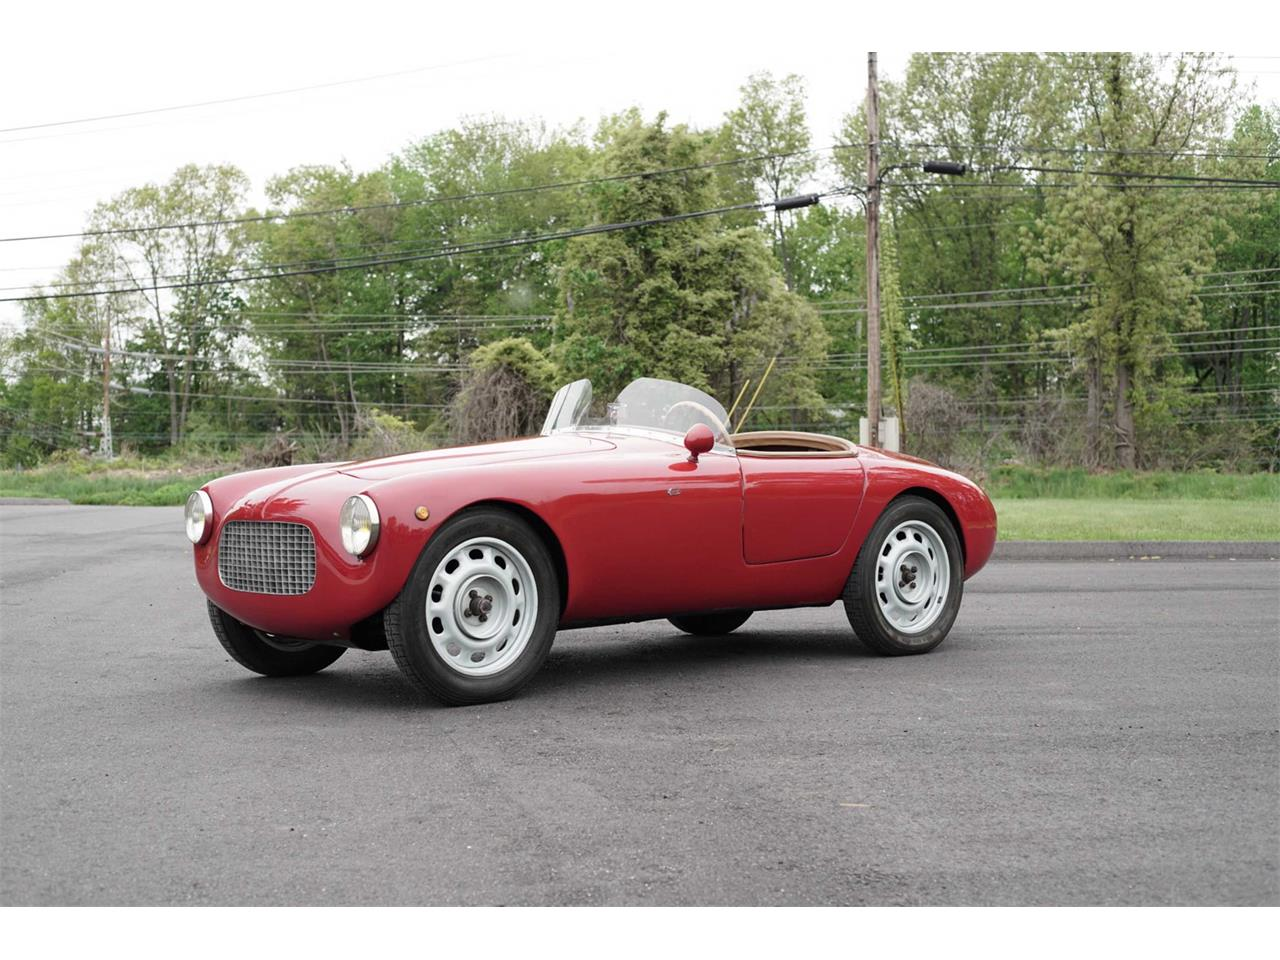 1951 Fiat Stanga Barchetta for sale in Westport, CT – photo 3